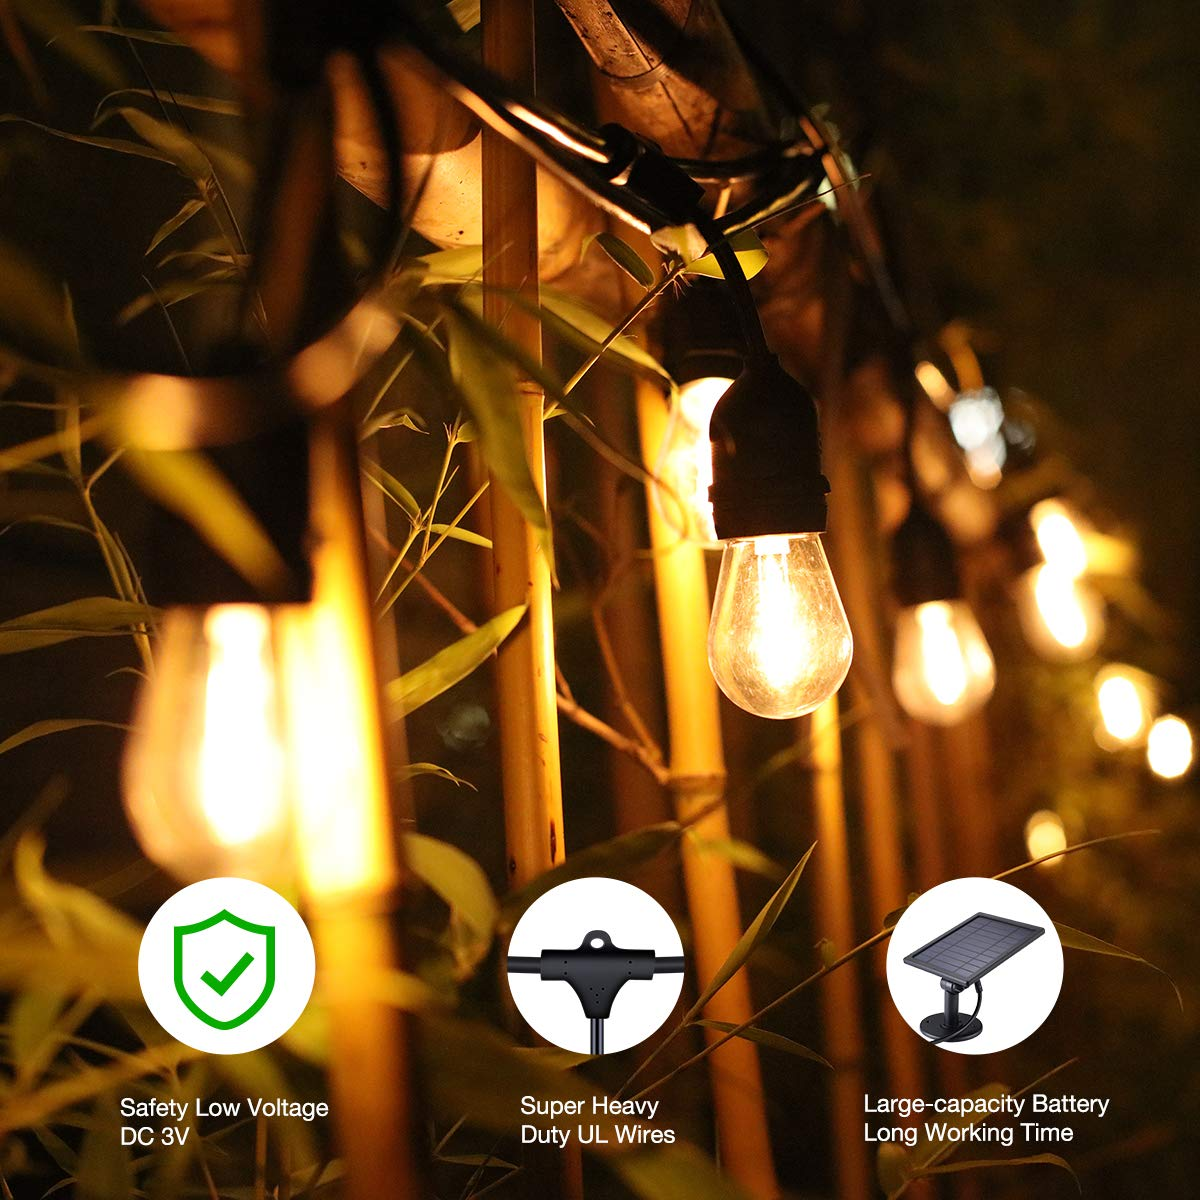 Foxlux Solar String Lights - 48FT LED Outdoor String Light - Shatterproof, Waterproof Pergola Lights - 15 Hanging Sockets, Light Sensor, S14 Edison Bulbs - Ambience for Patio, Backyard, Garden, Bistro by FOXLUX (Image #2)